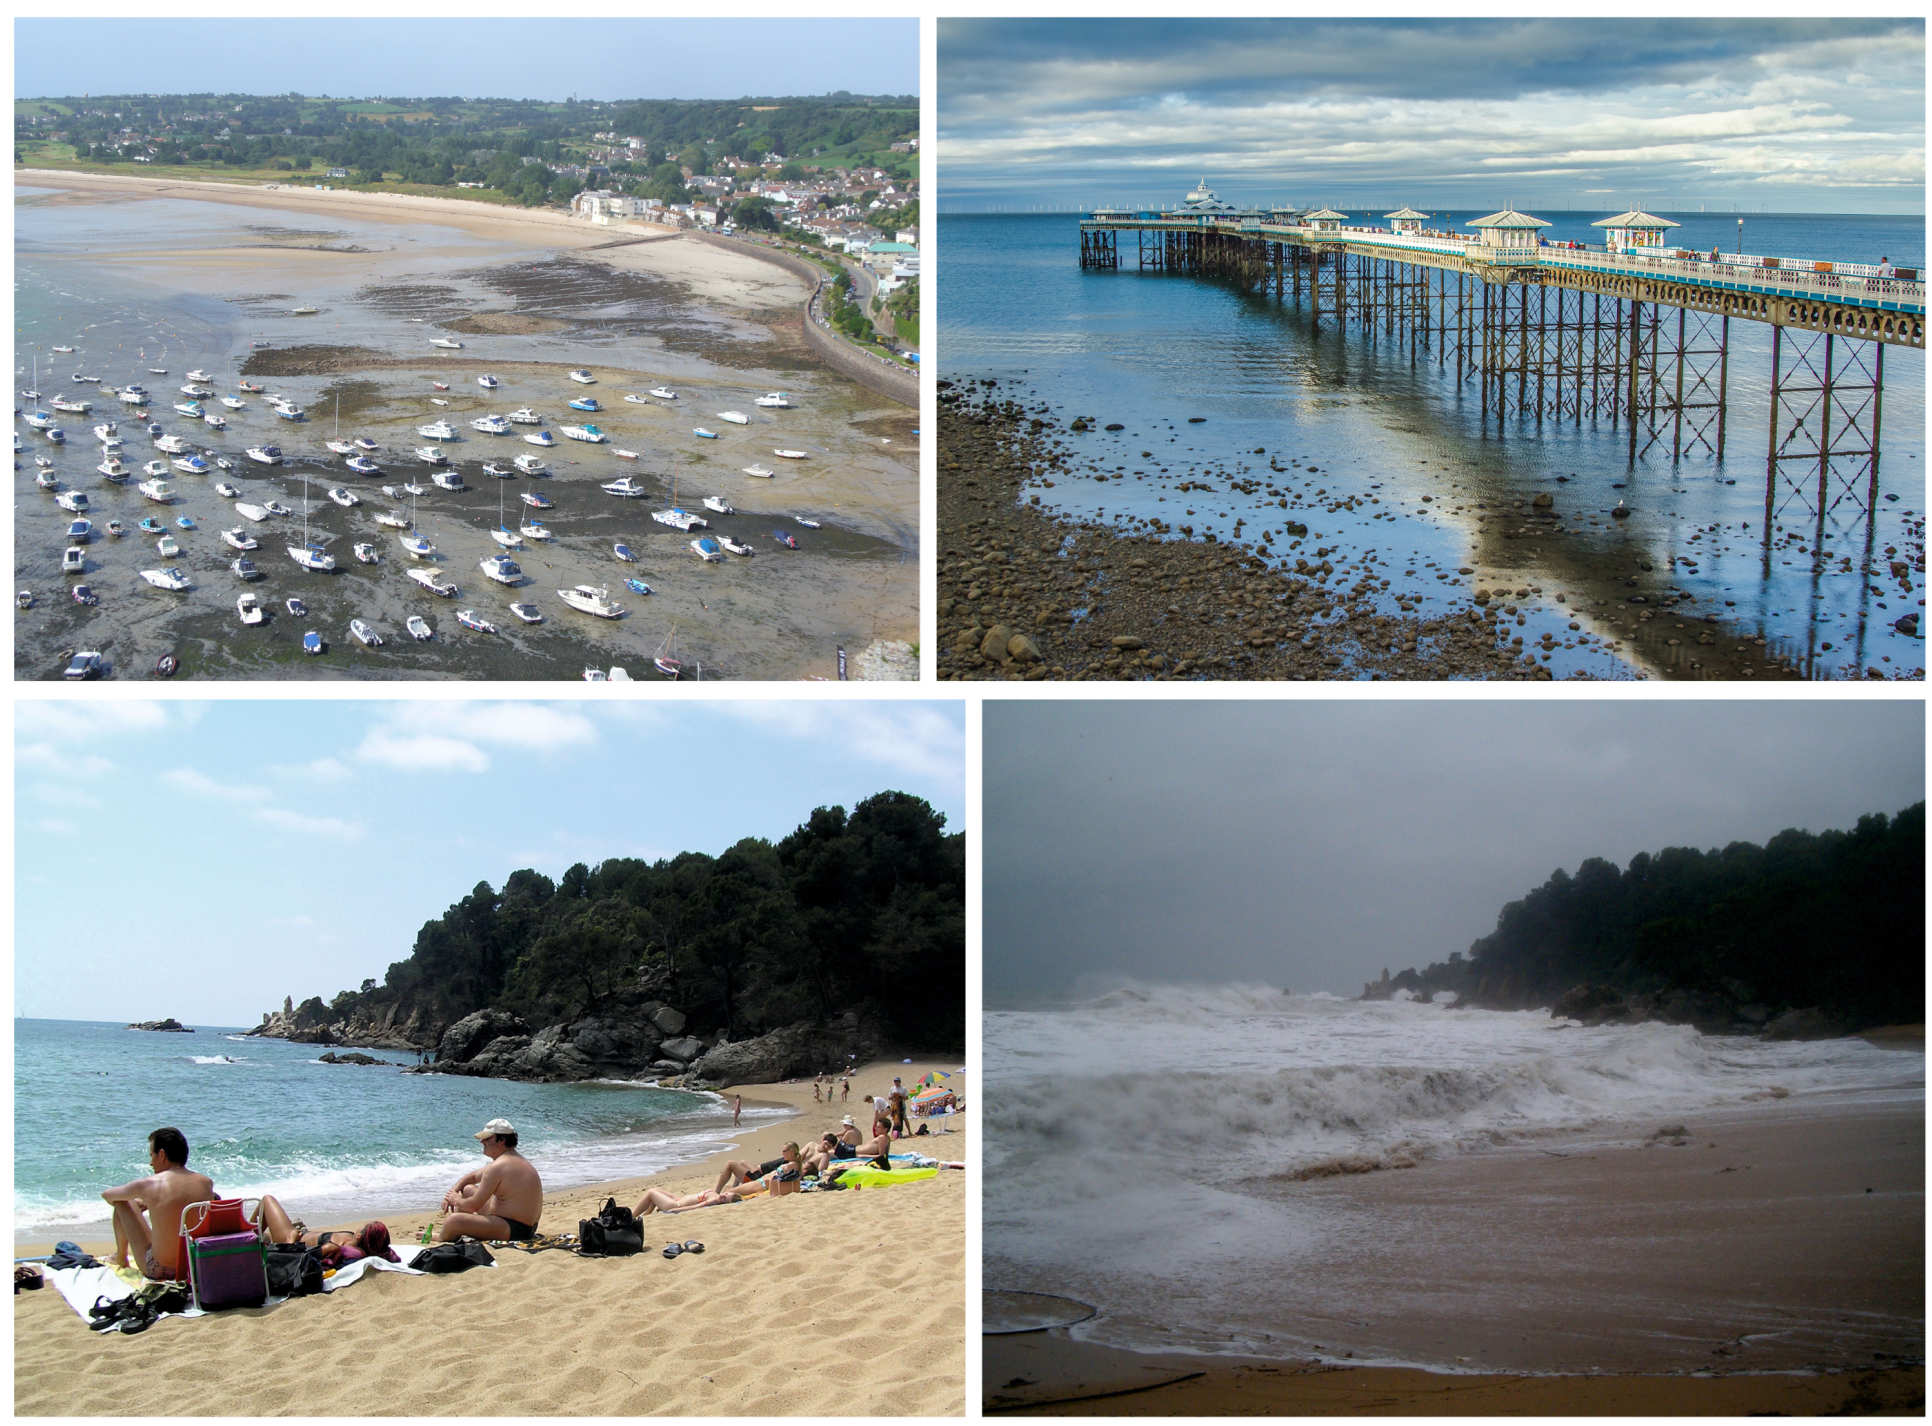 [Top-left] Gorey harbour, Jersey at low tide, [Top-left] Example of a Coastal Structure: Llandudno Pier, Wales , [Bottom] A recreational beach in the Mediterranean Sea in calm and storm conditions